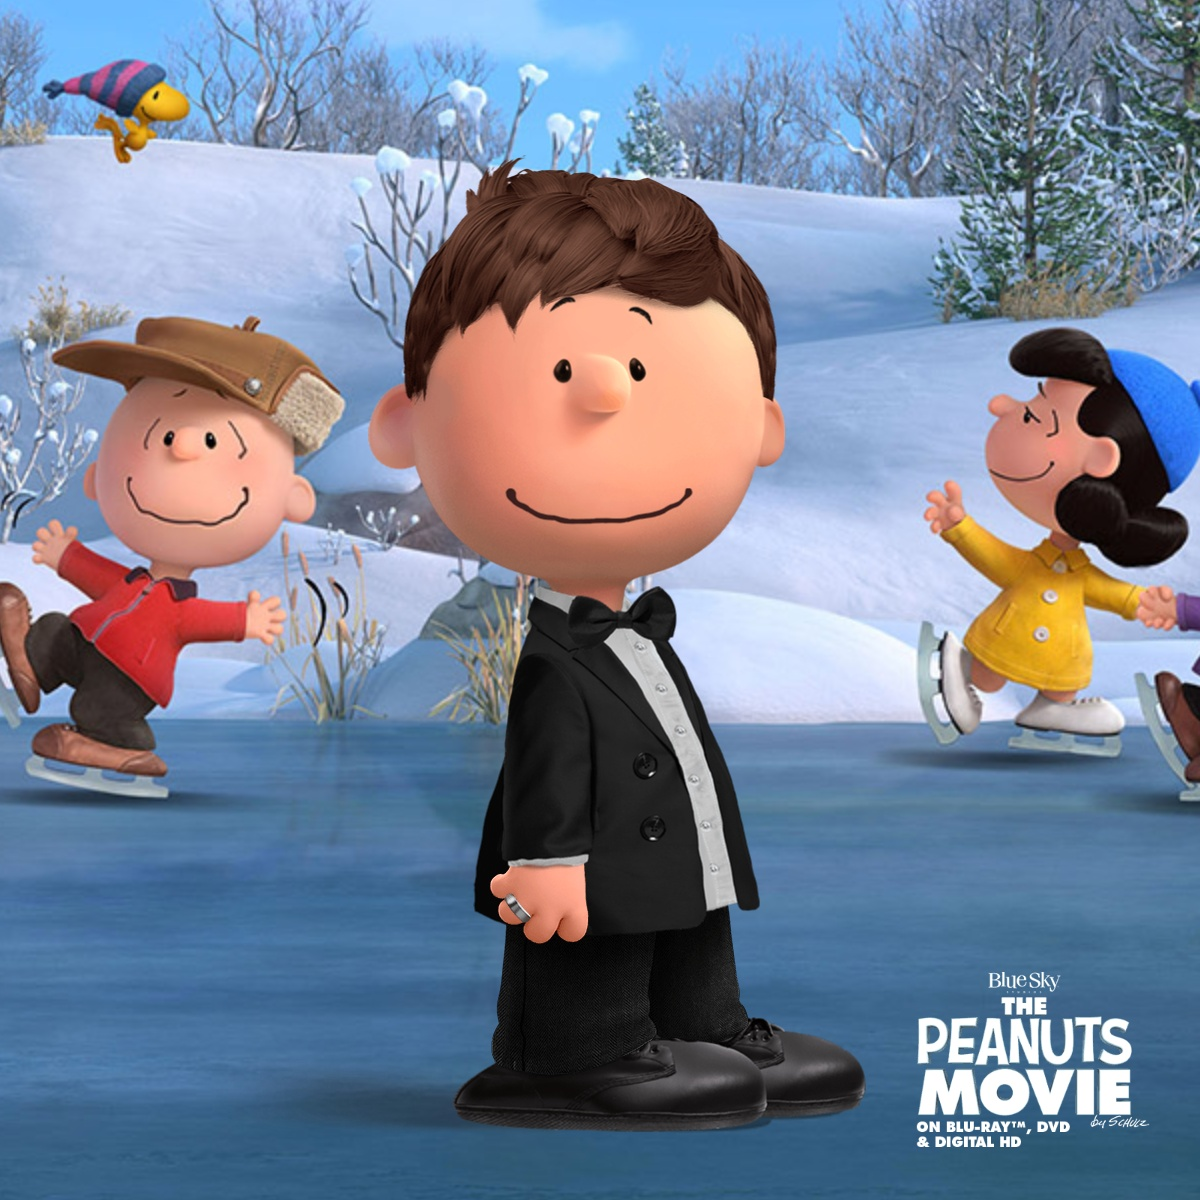 James Bond Jr (Peanuts franchise)